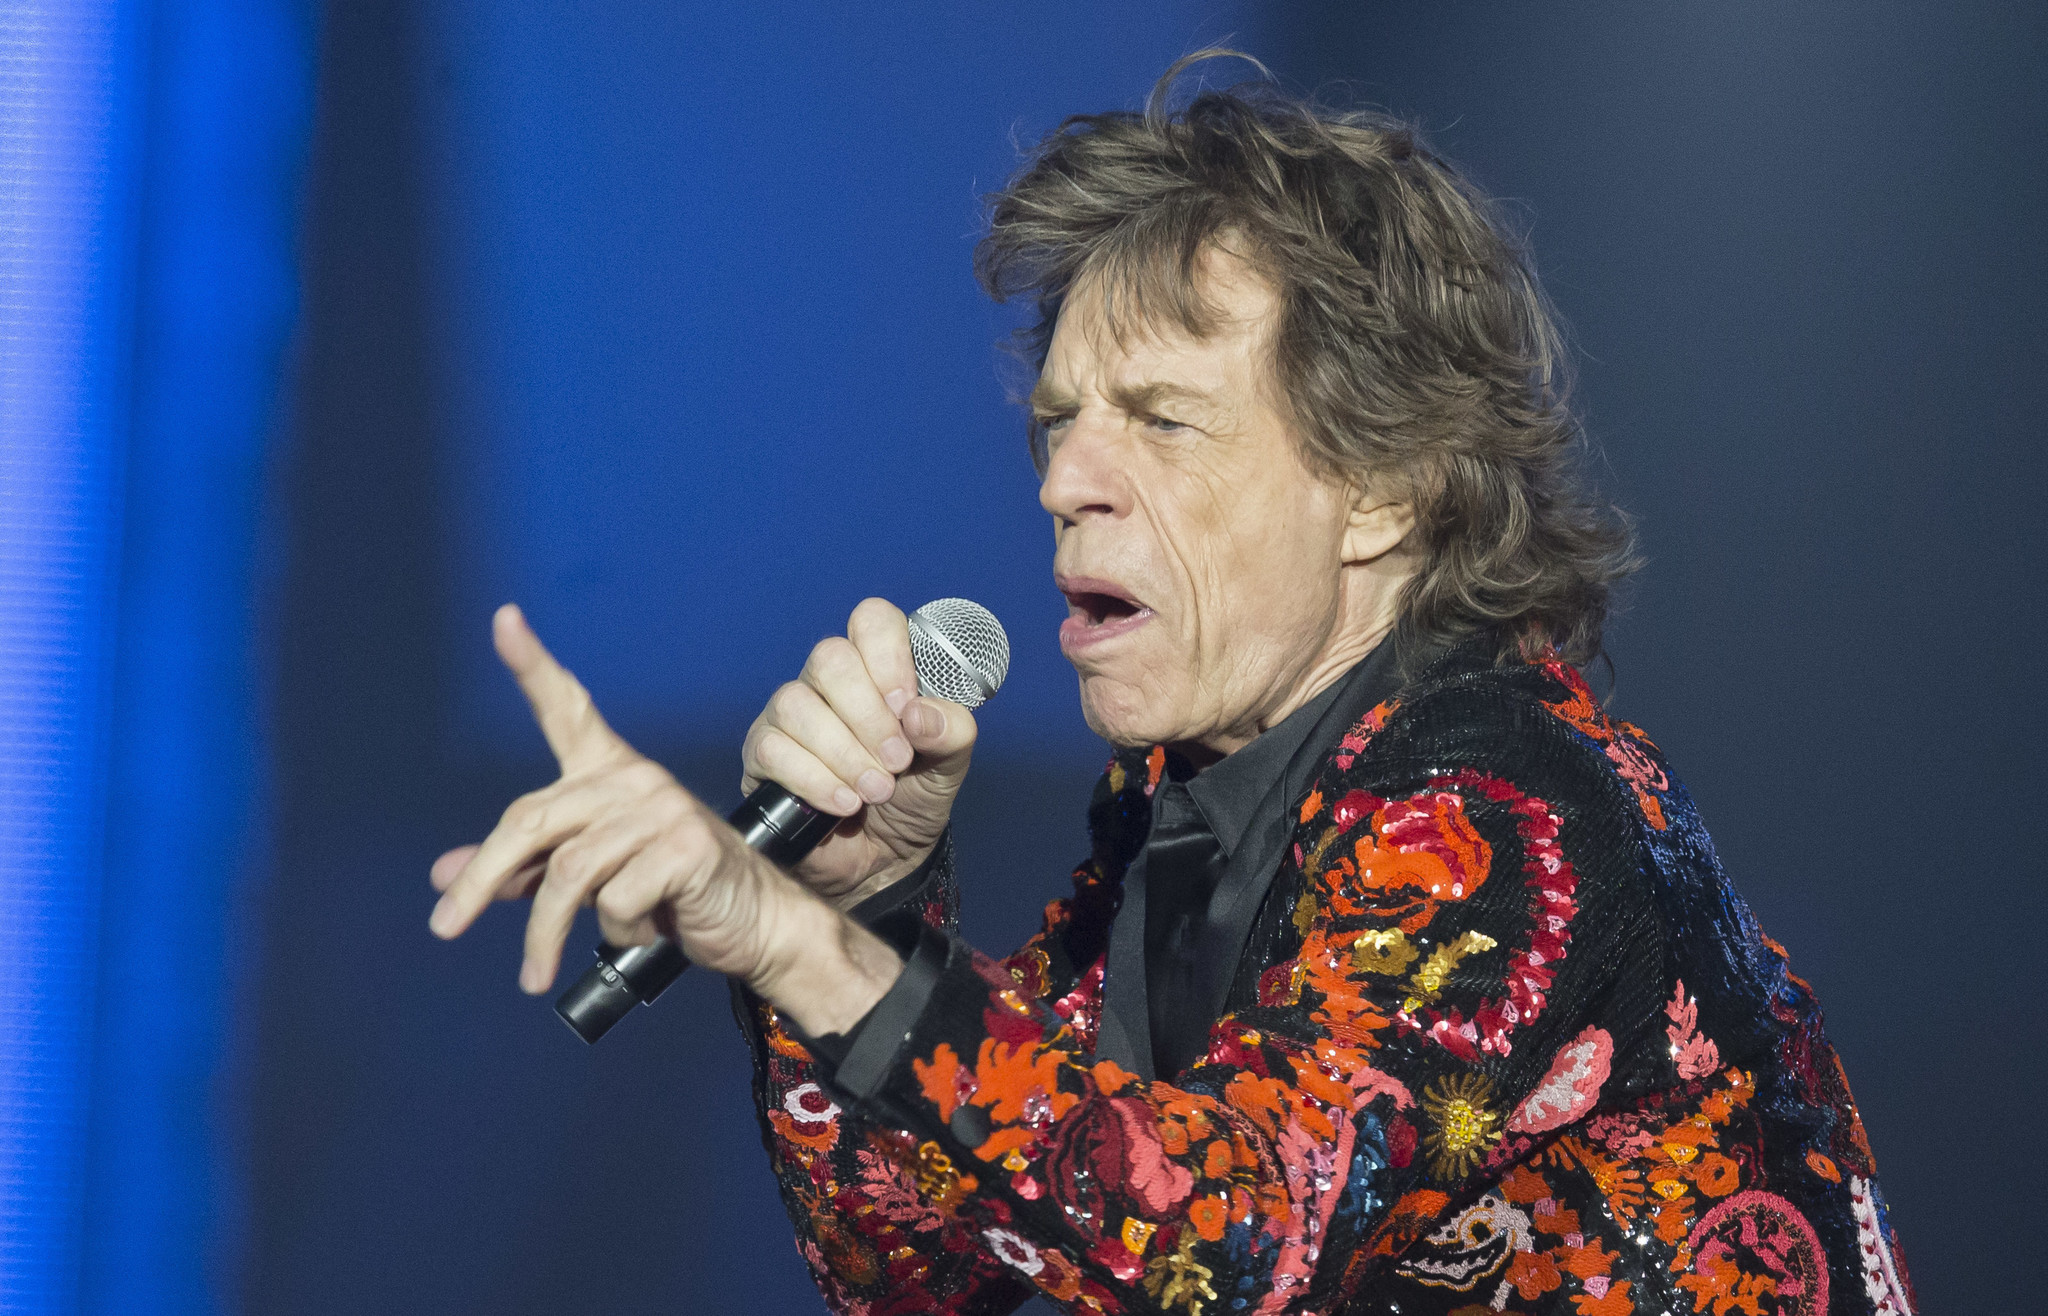 The Rolling Stones postpone tour as Mick Jagger receives medical treatment